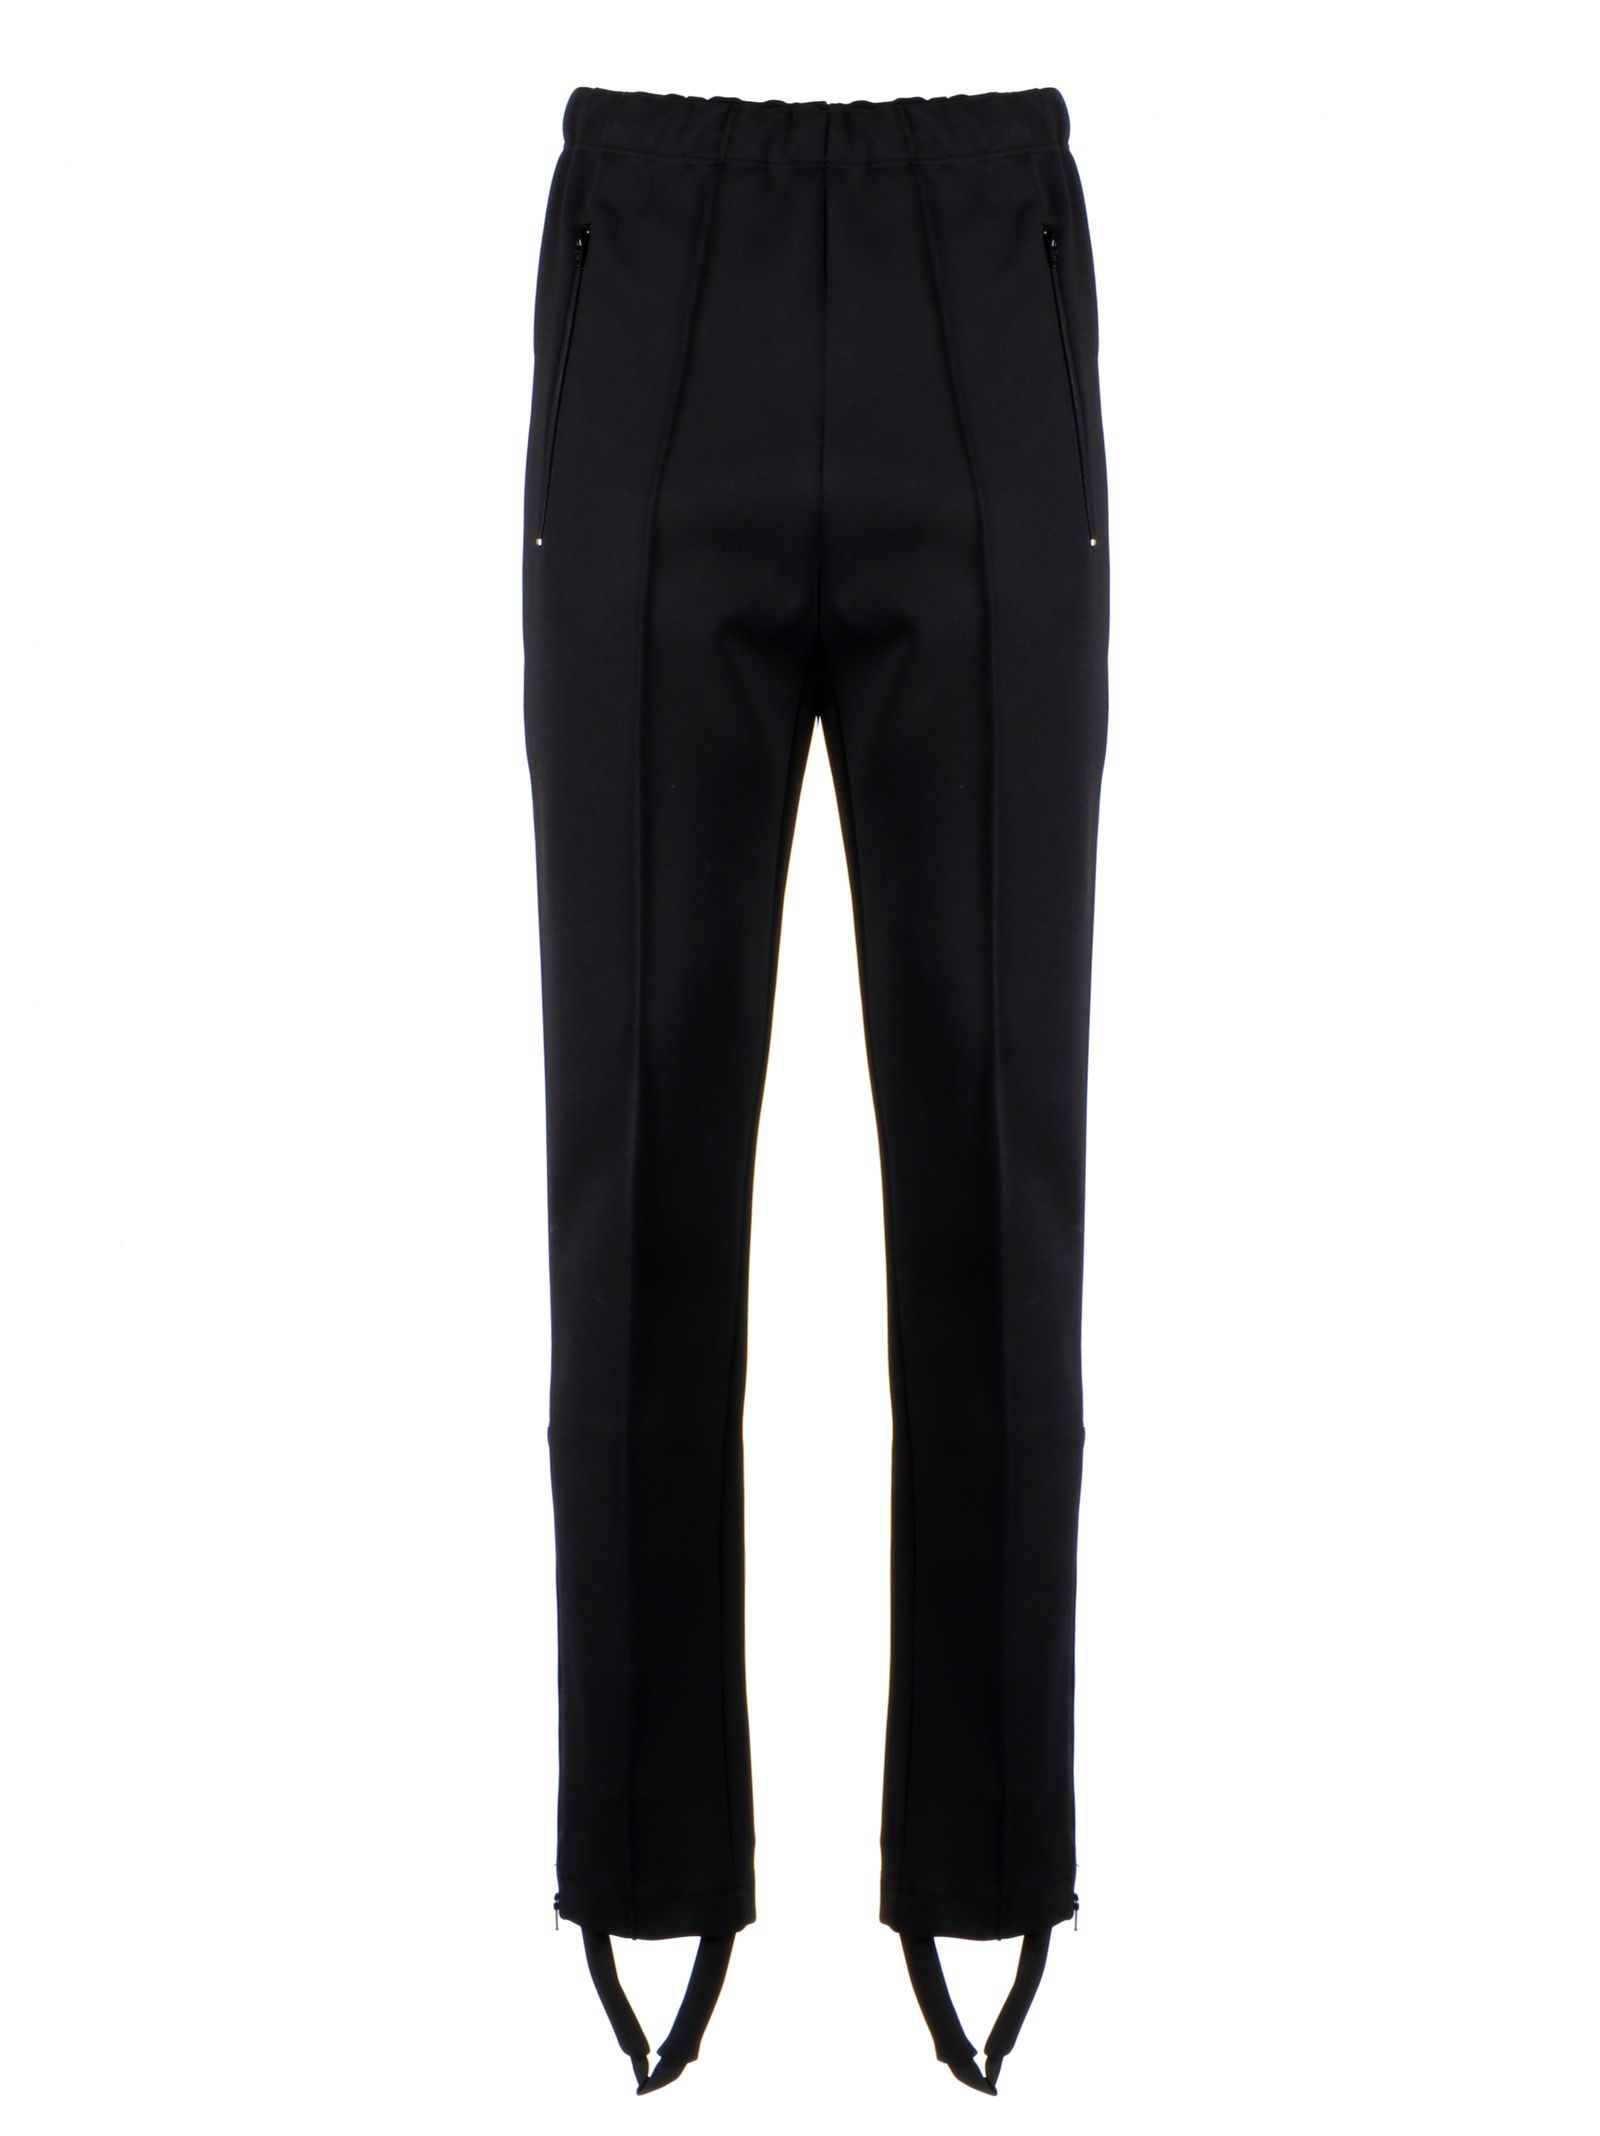 Balenciaga Woman's Trousers - Balenciaga - Civico 9